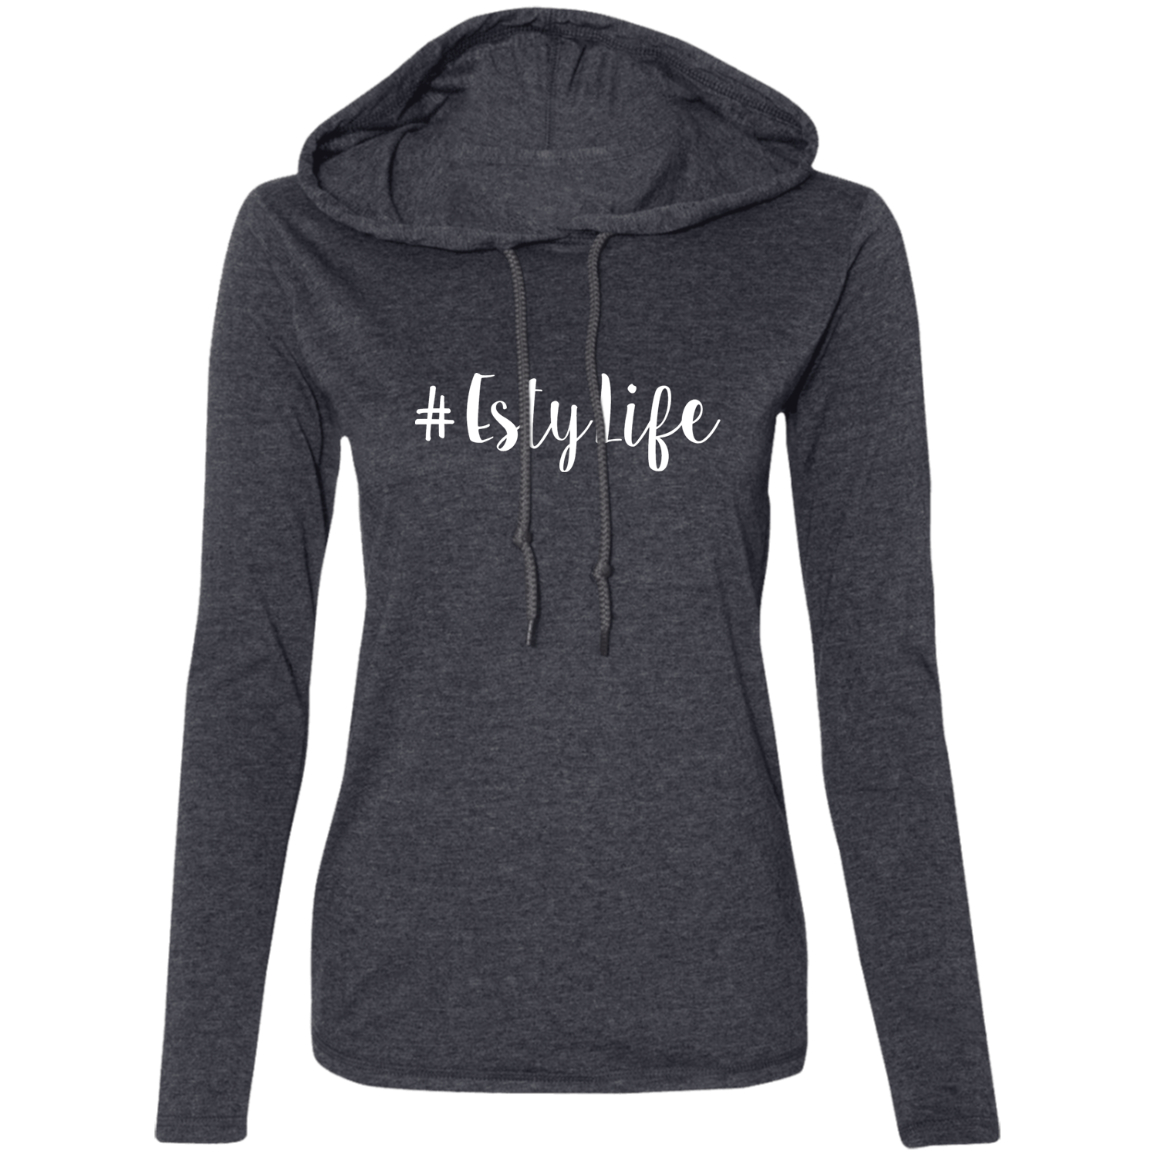 #EstyLife Long Sleeve